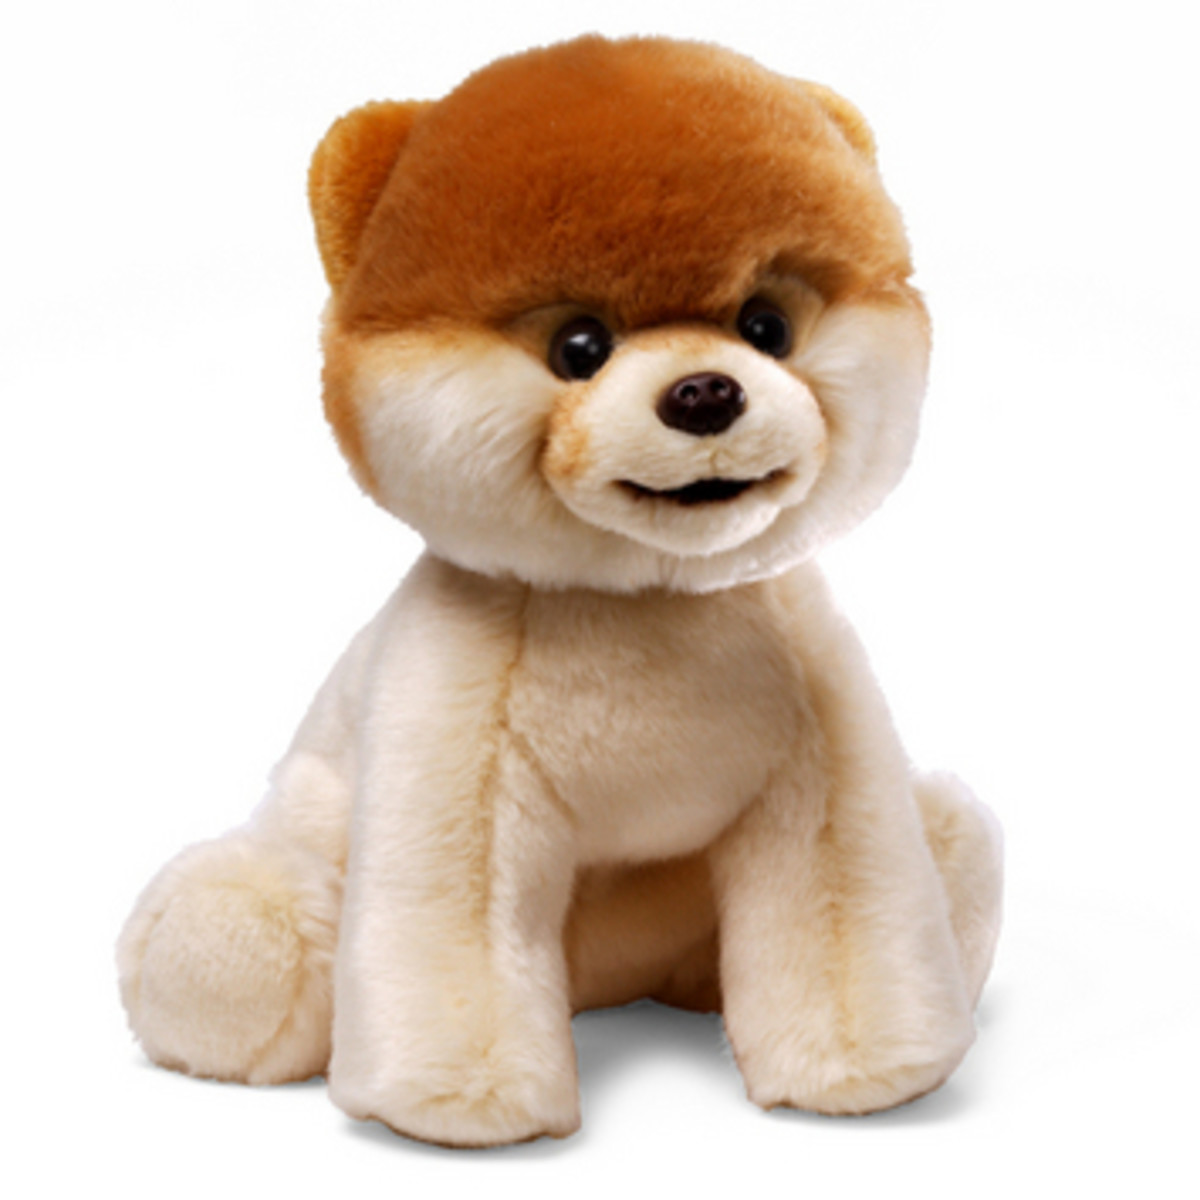 Gund Boo: World's cutest stuffed dog